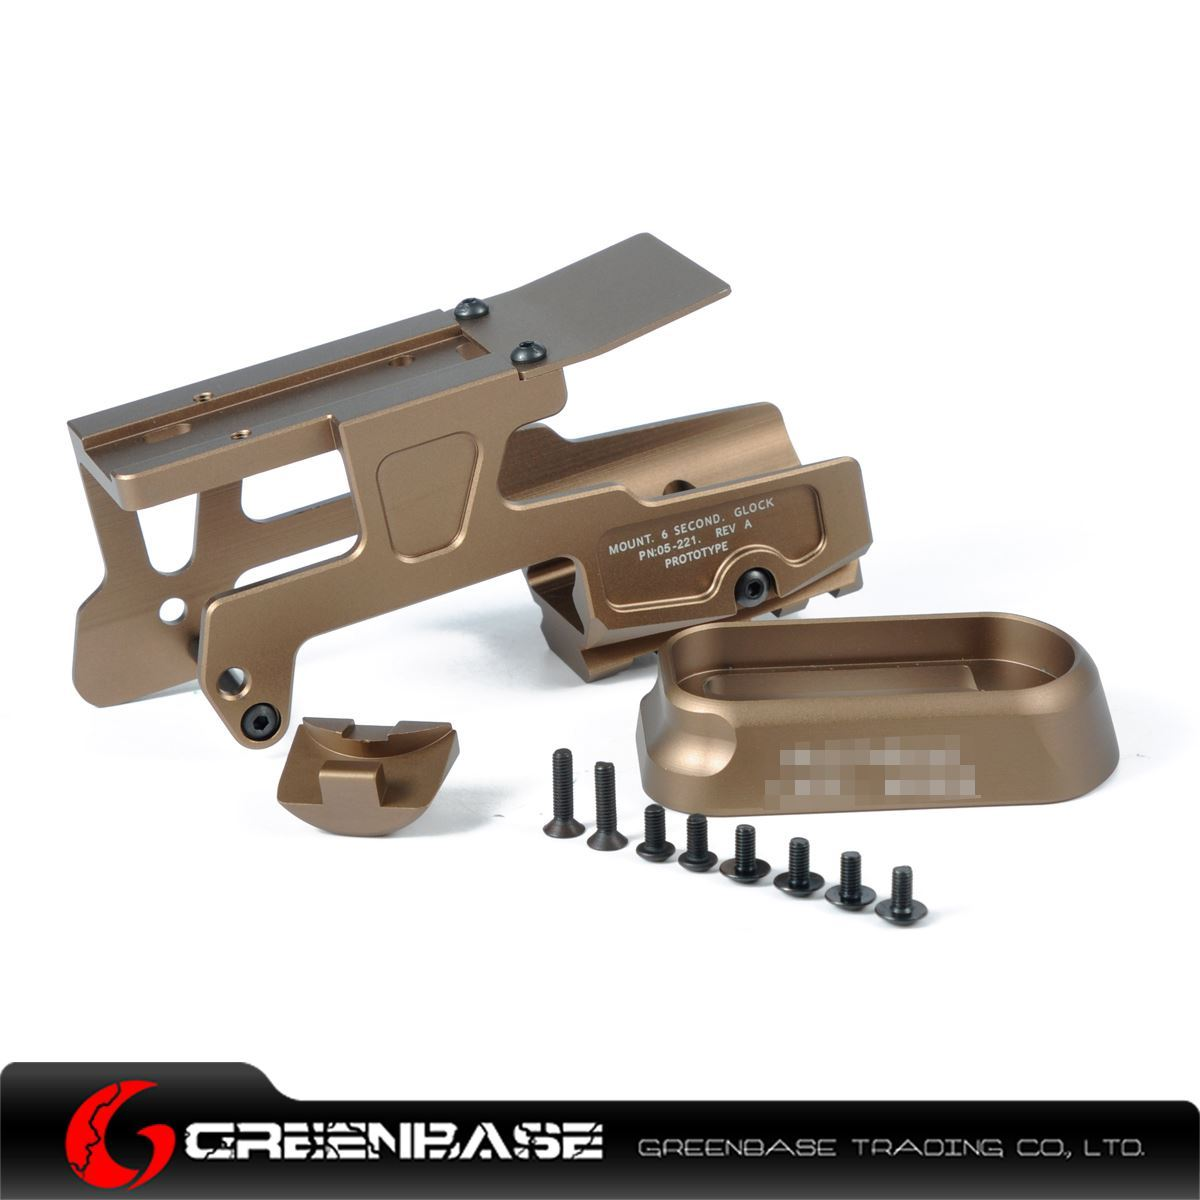 0026495_gb-alg-6-second-mount-for-glock-17-and-18c-pistols-coyote-brown-nga1200